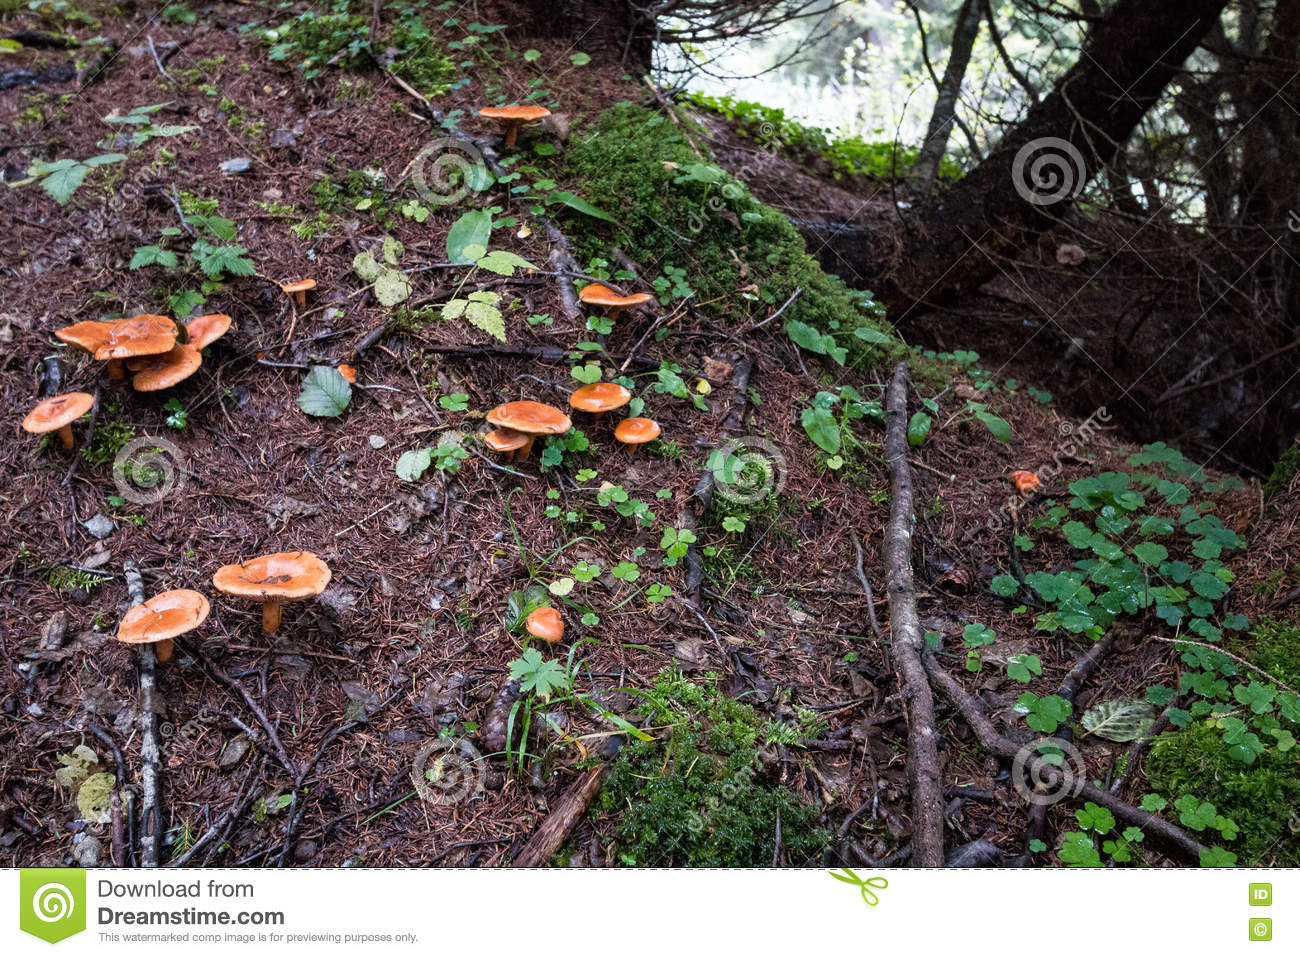 Chanterelle mushrooms in mountain forest